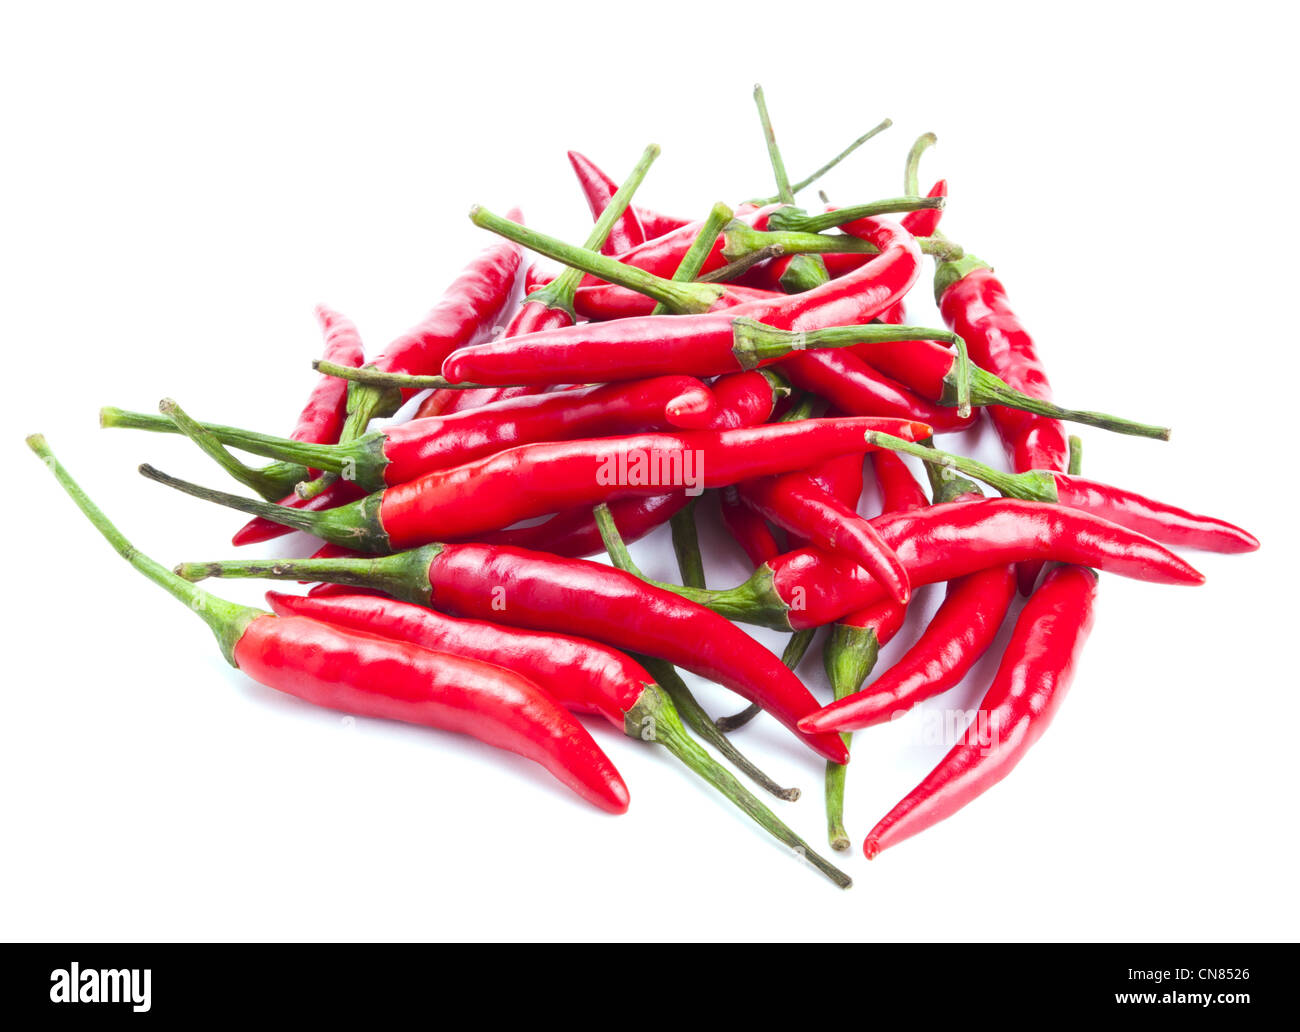 Red chili peppers isolated on white background - Stock Image